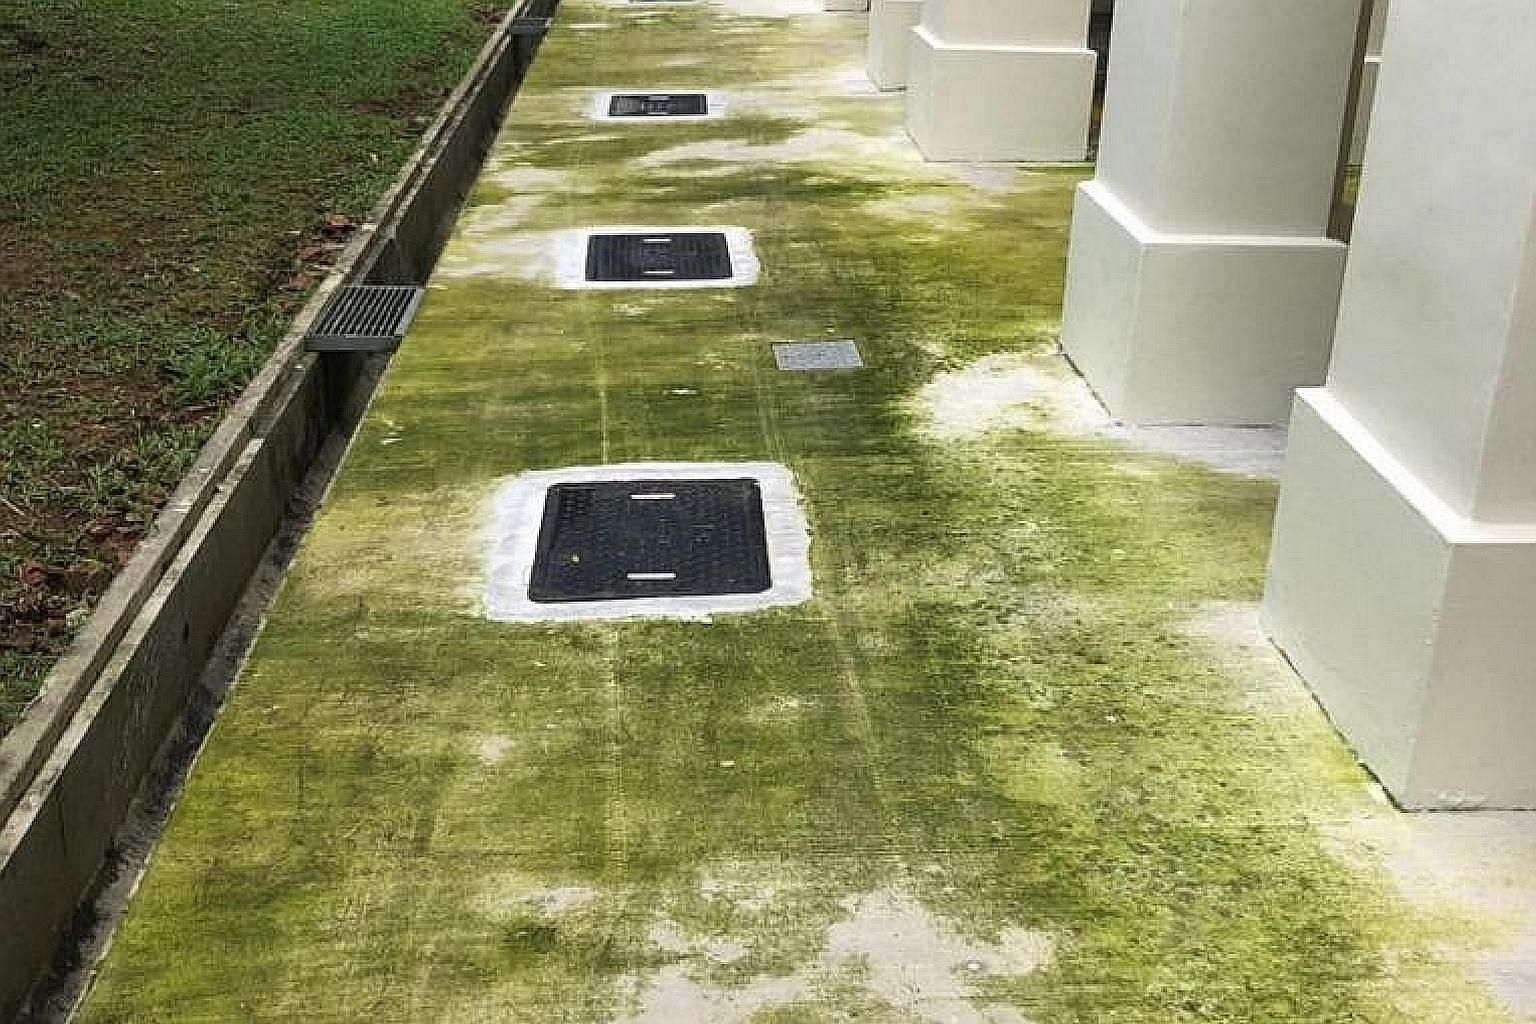 Dark green patches next to the void deck of several blocks in Woodlands Street 81 are seen in a photo posted on online forum Reddit.